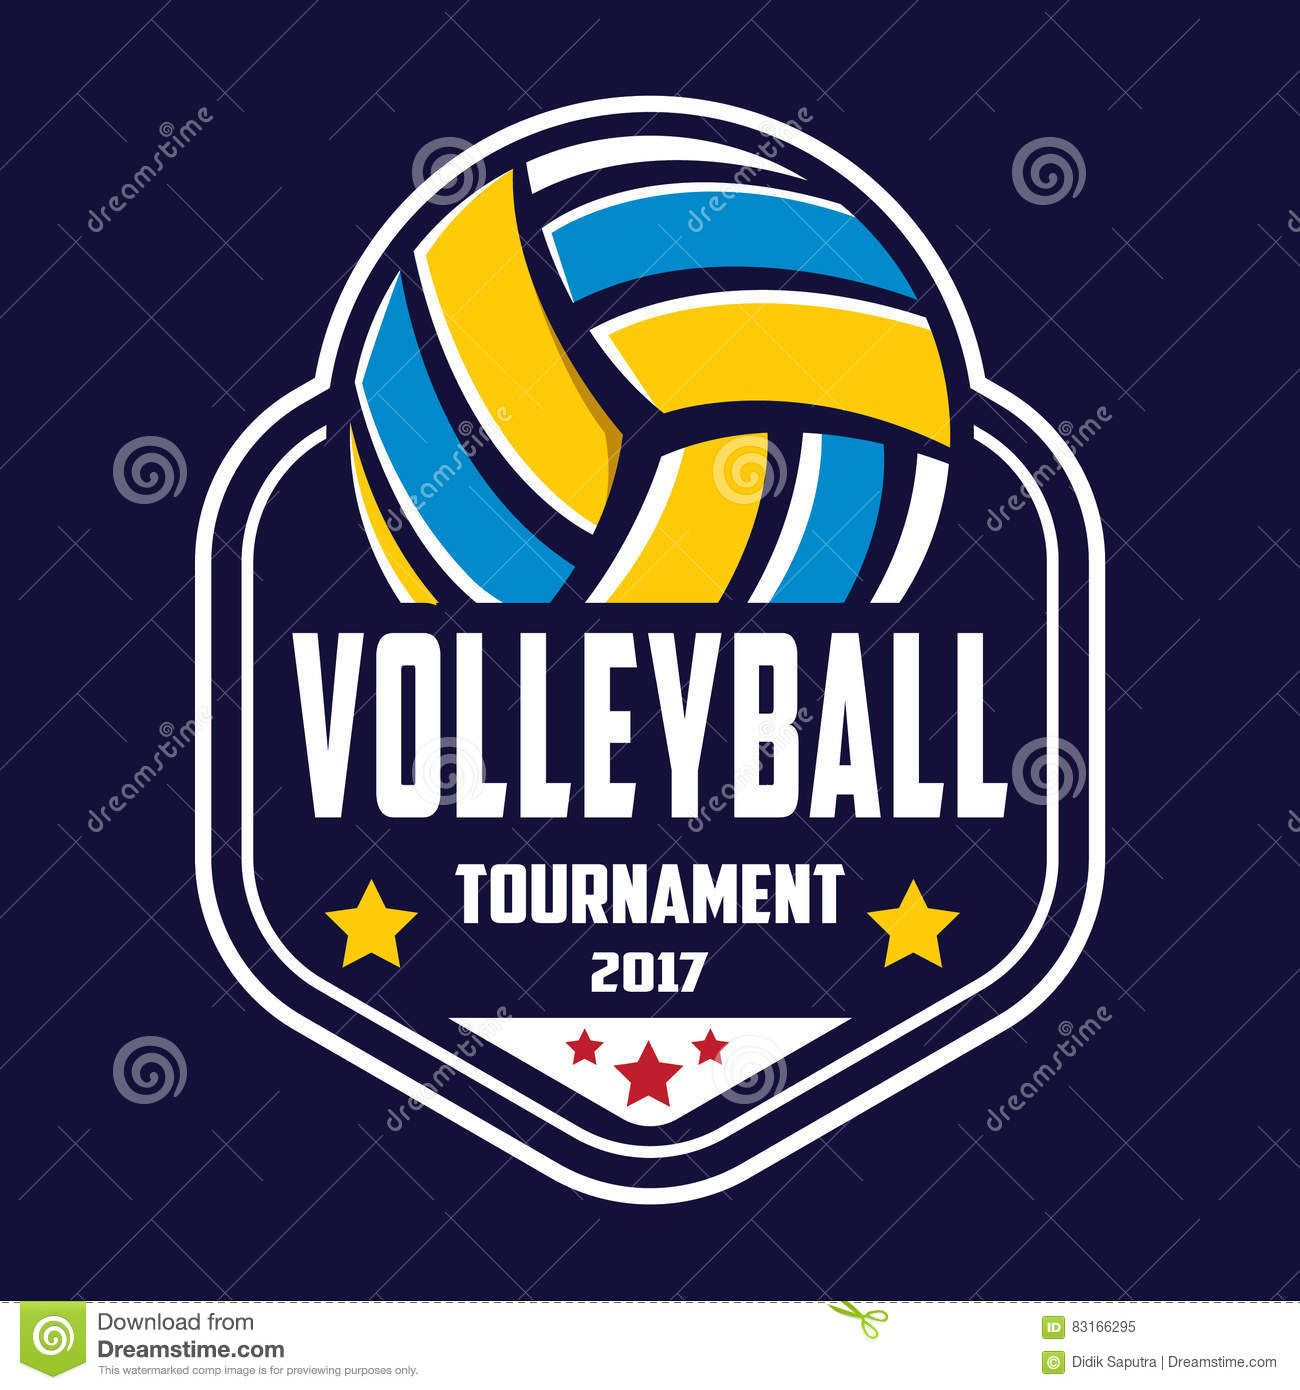 Volleyball Classic Tournament Logo Google Search Tournaments Volleyball Logos